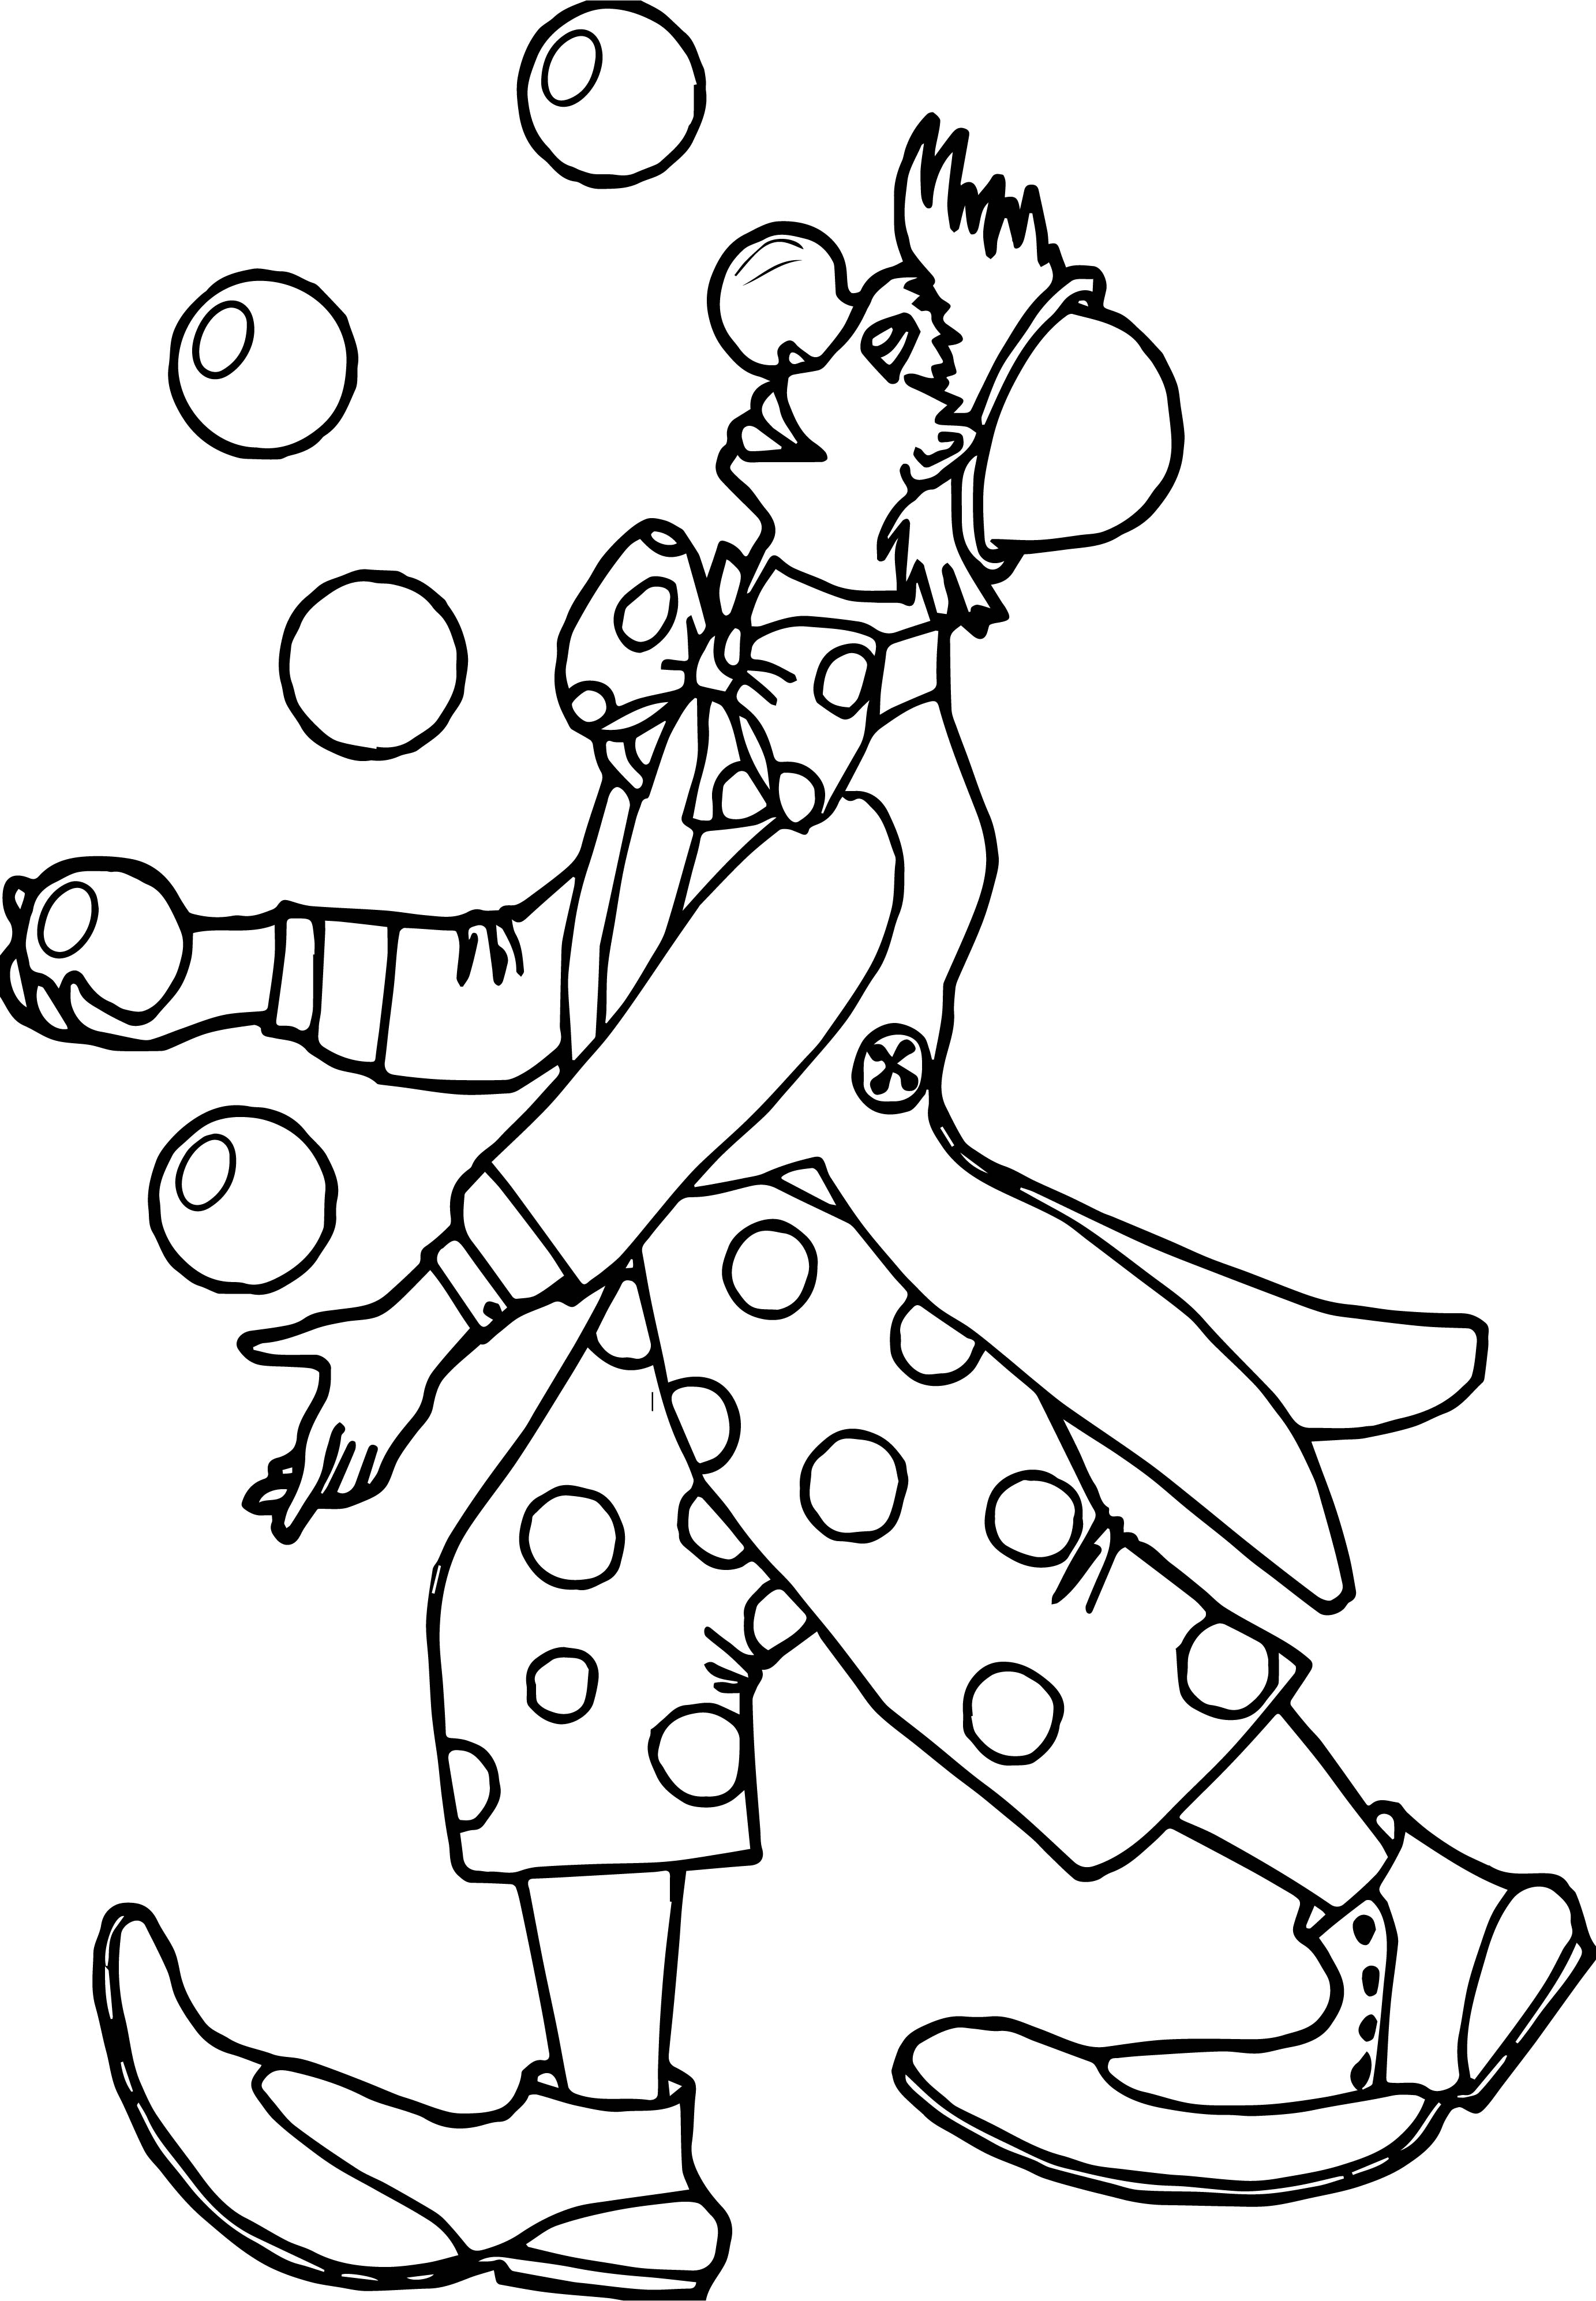 Clown Ball Coloring Page